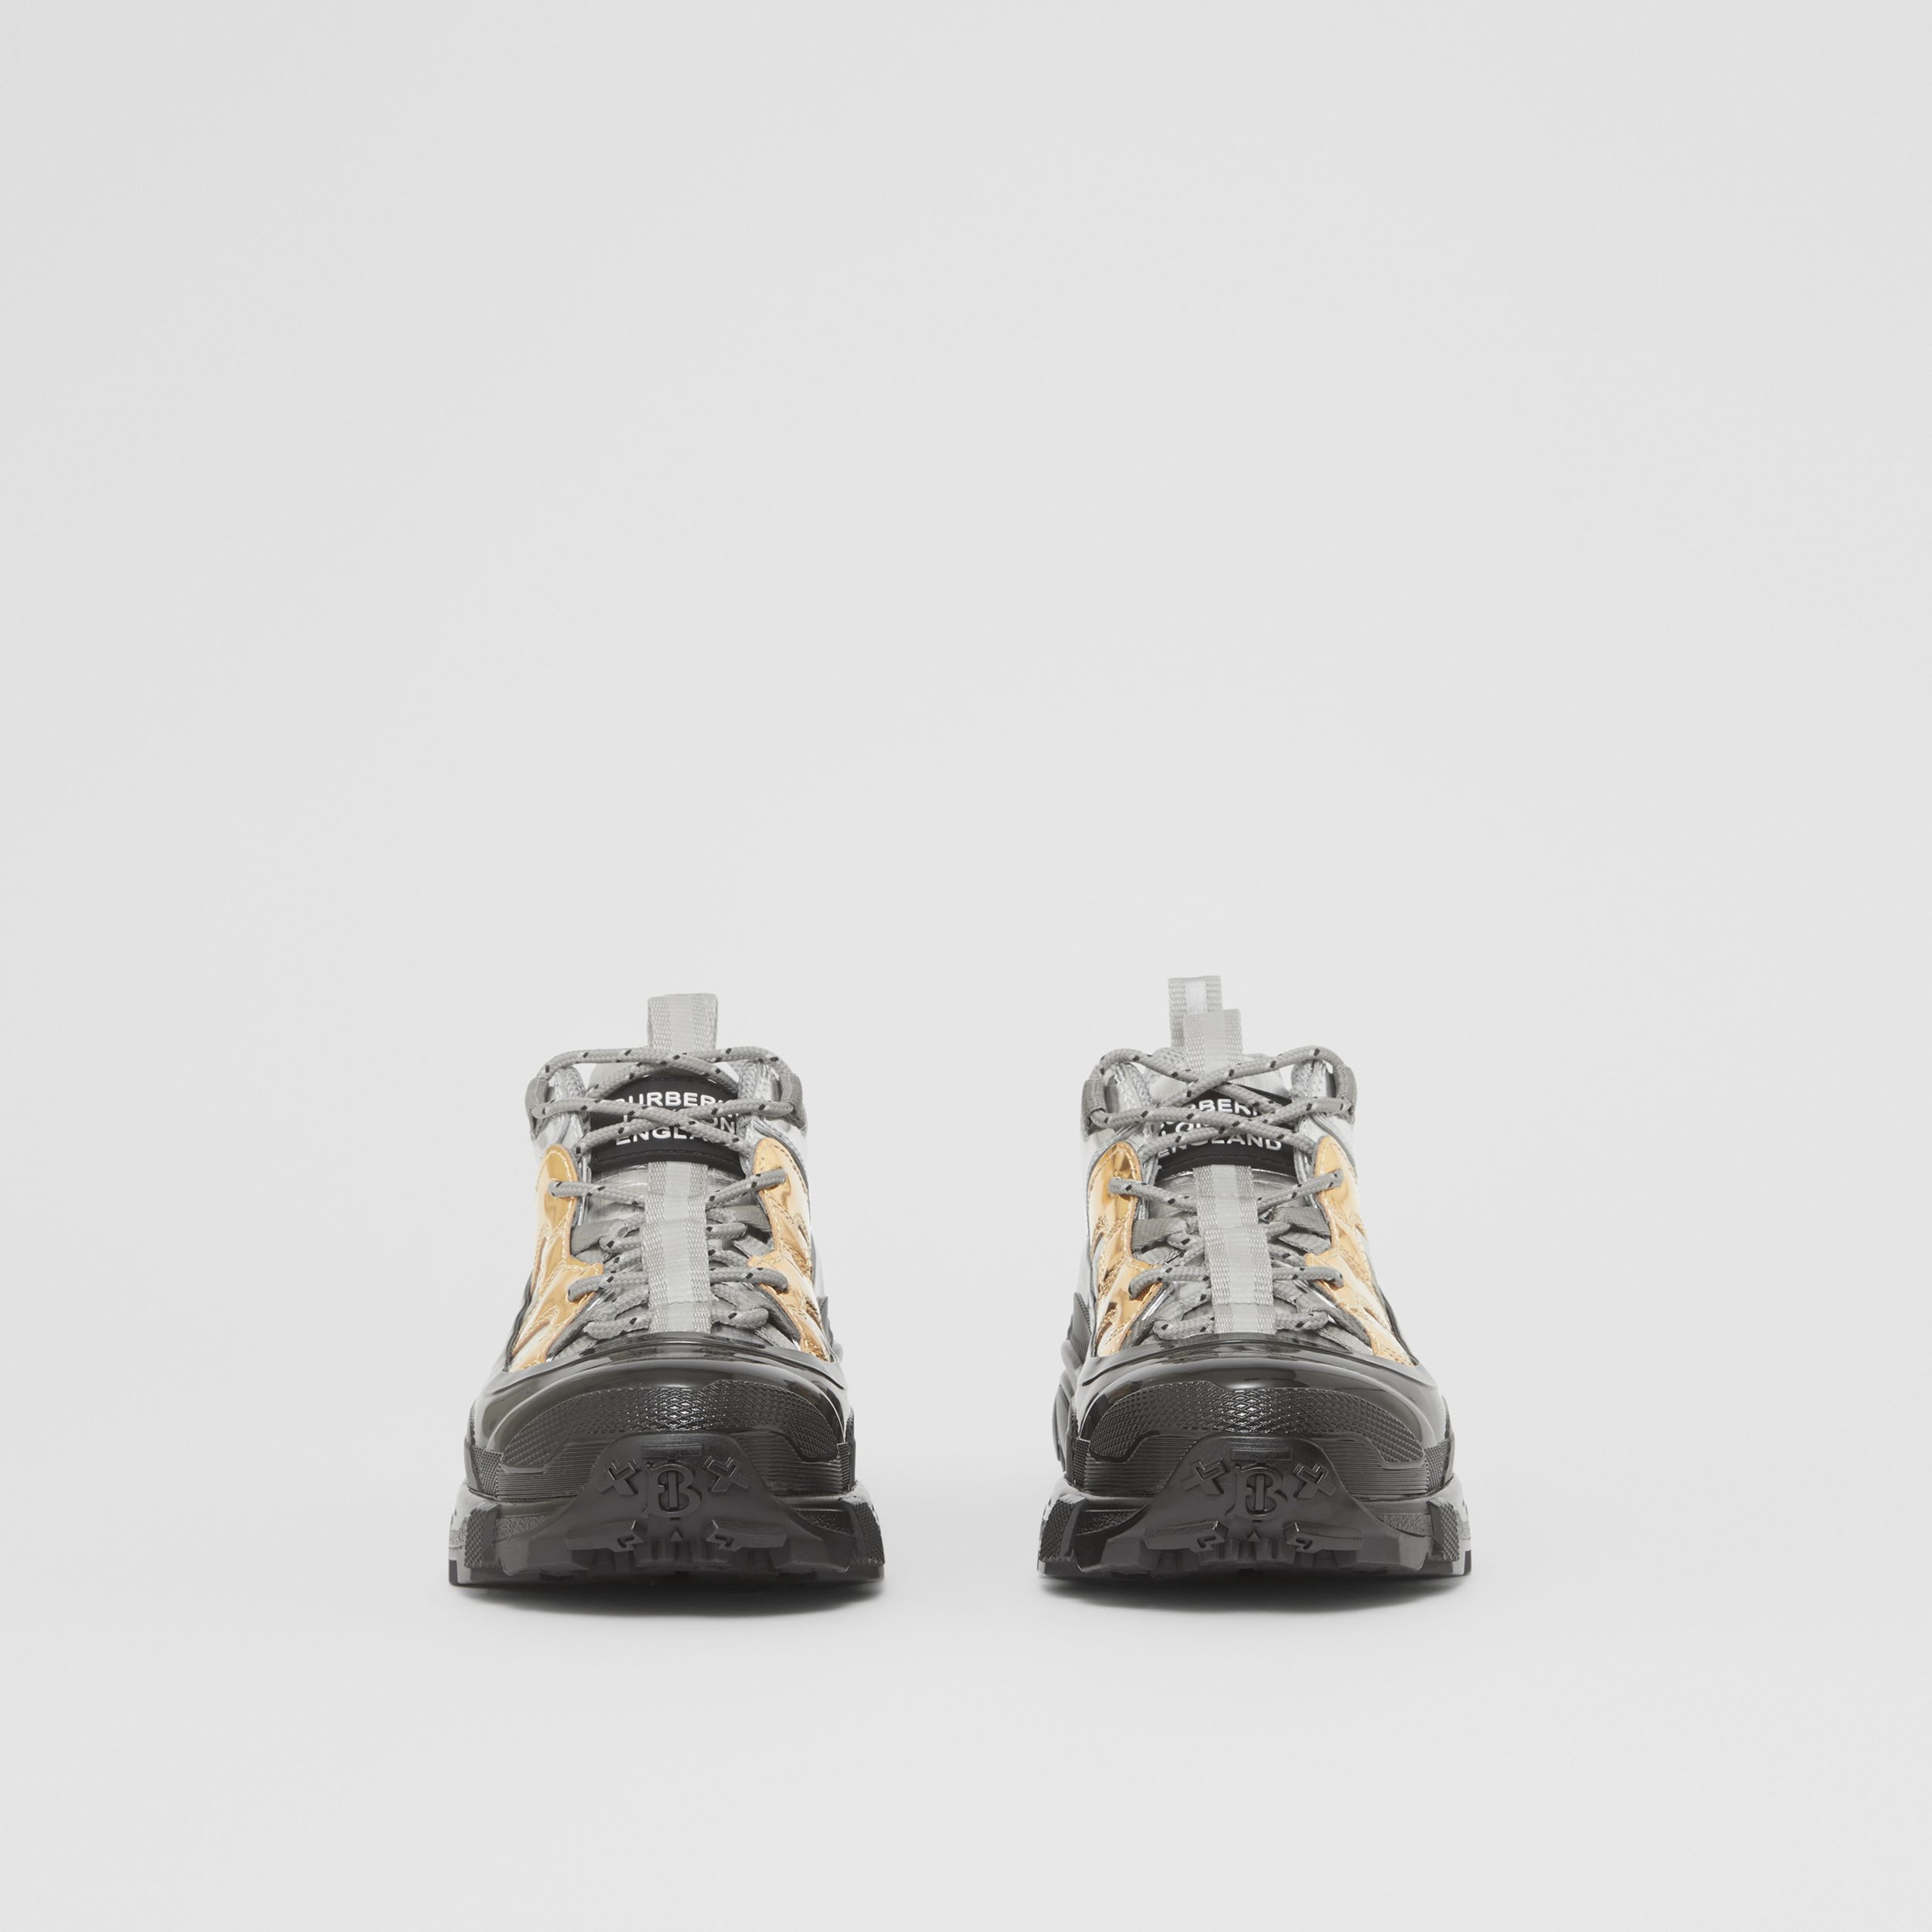 Two-tone Metallic Leather Arthur Sneakers in Silver/gold - Women | Burberry - 4